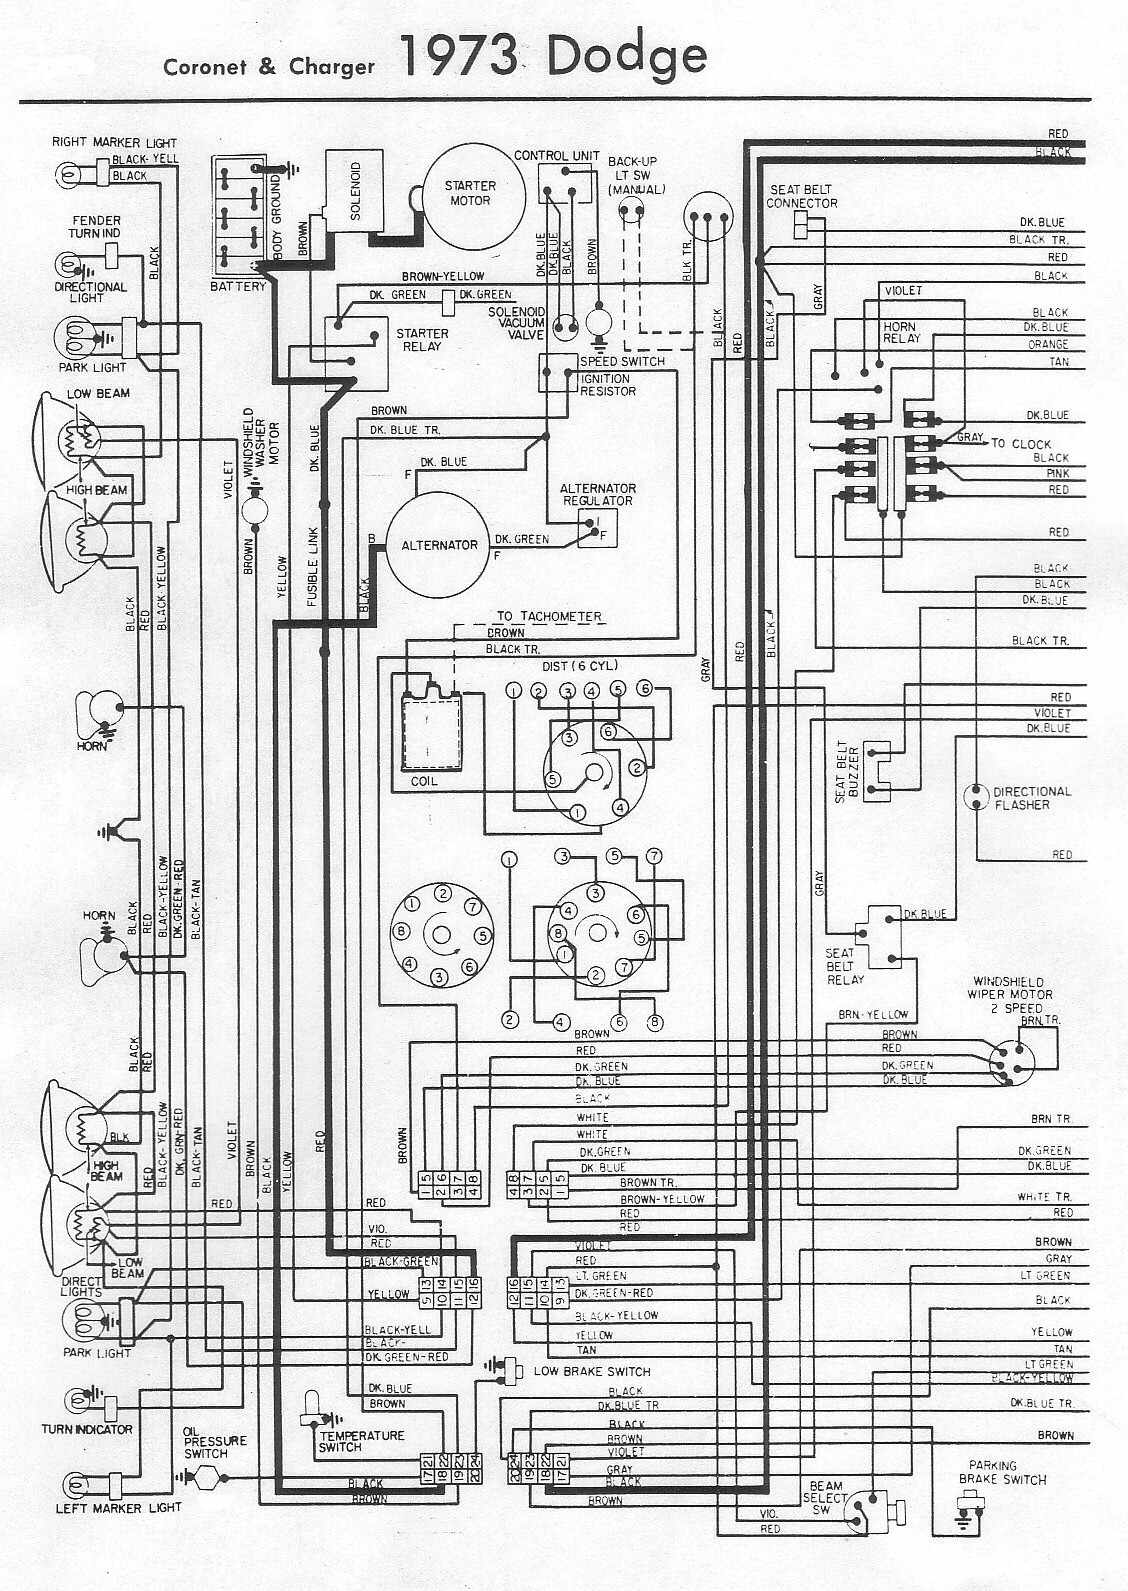 Citroen C2 Vtr Wiring Diagram All Kind Of Diagrams Harness Citro N Saxo Android Apps On Google Play C3 Fuse Rh Dbmovies Us